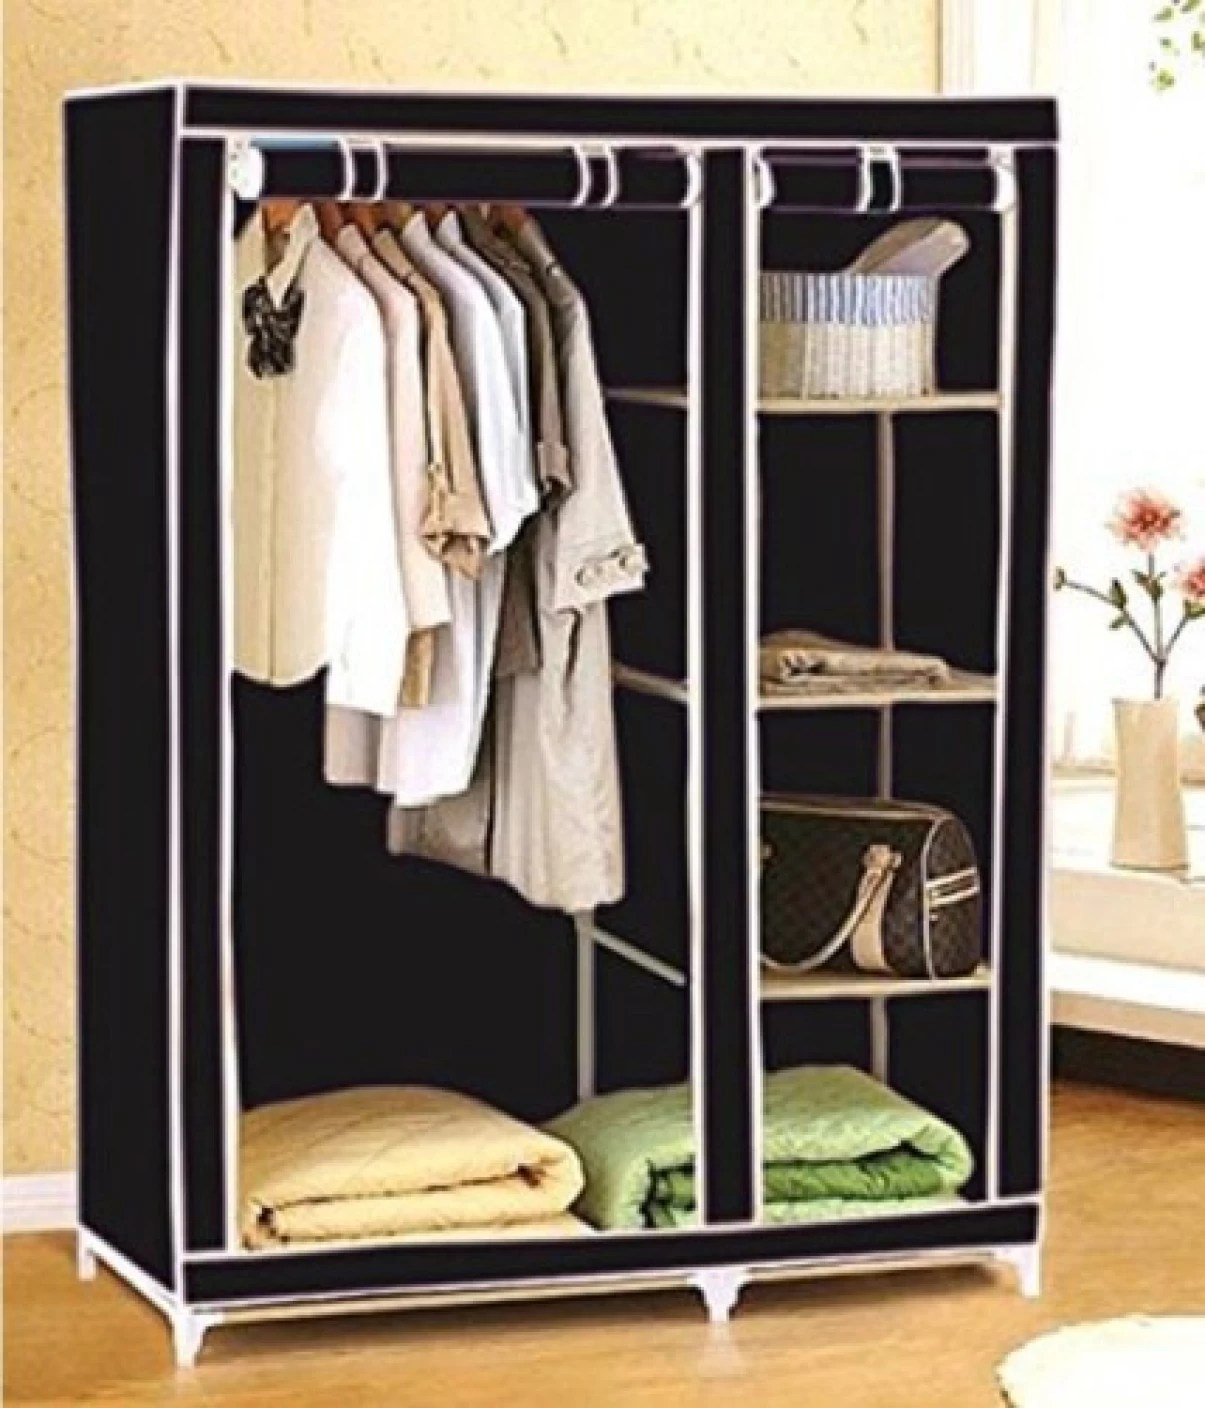 steel chair flipkart dining cushions ei carbon collapsible wardrobe price in india buy